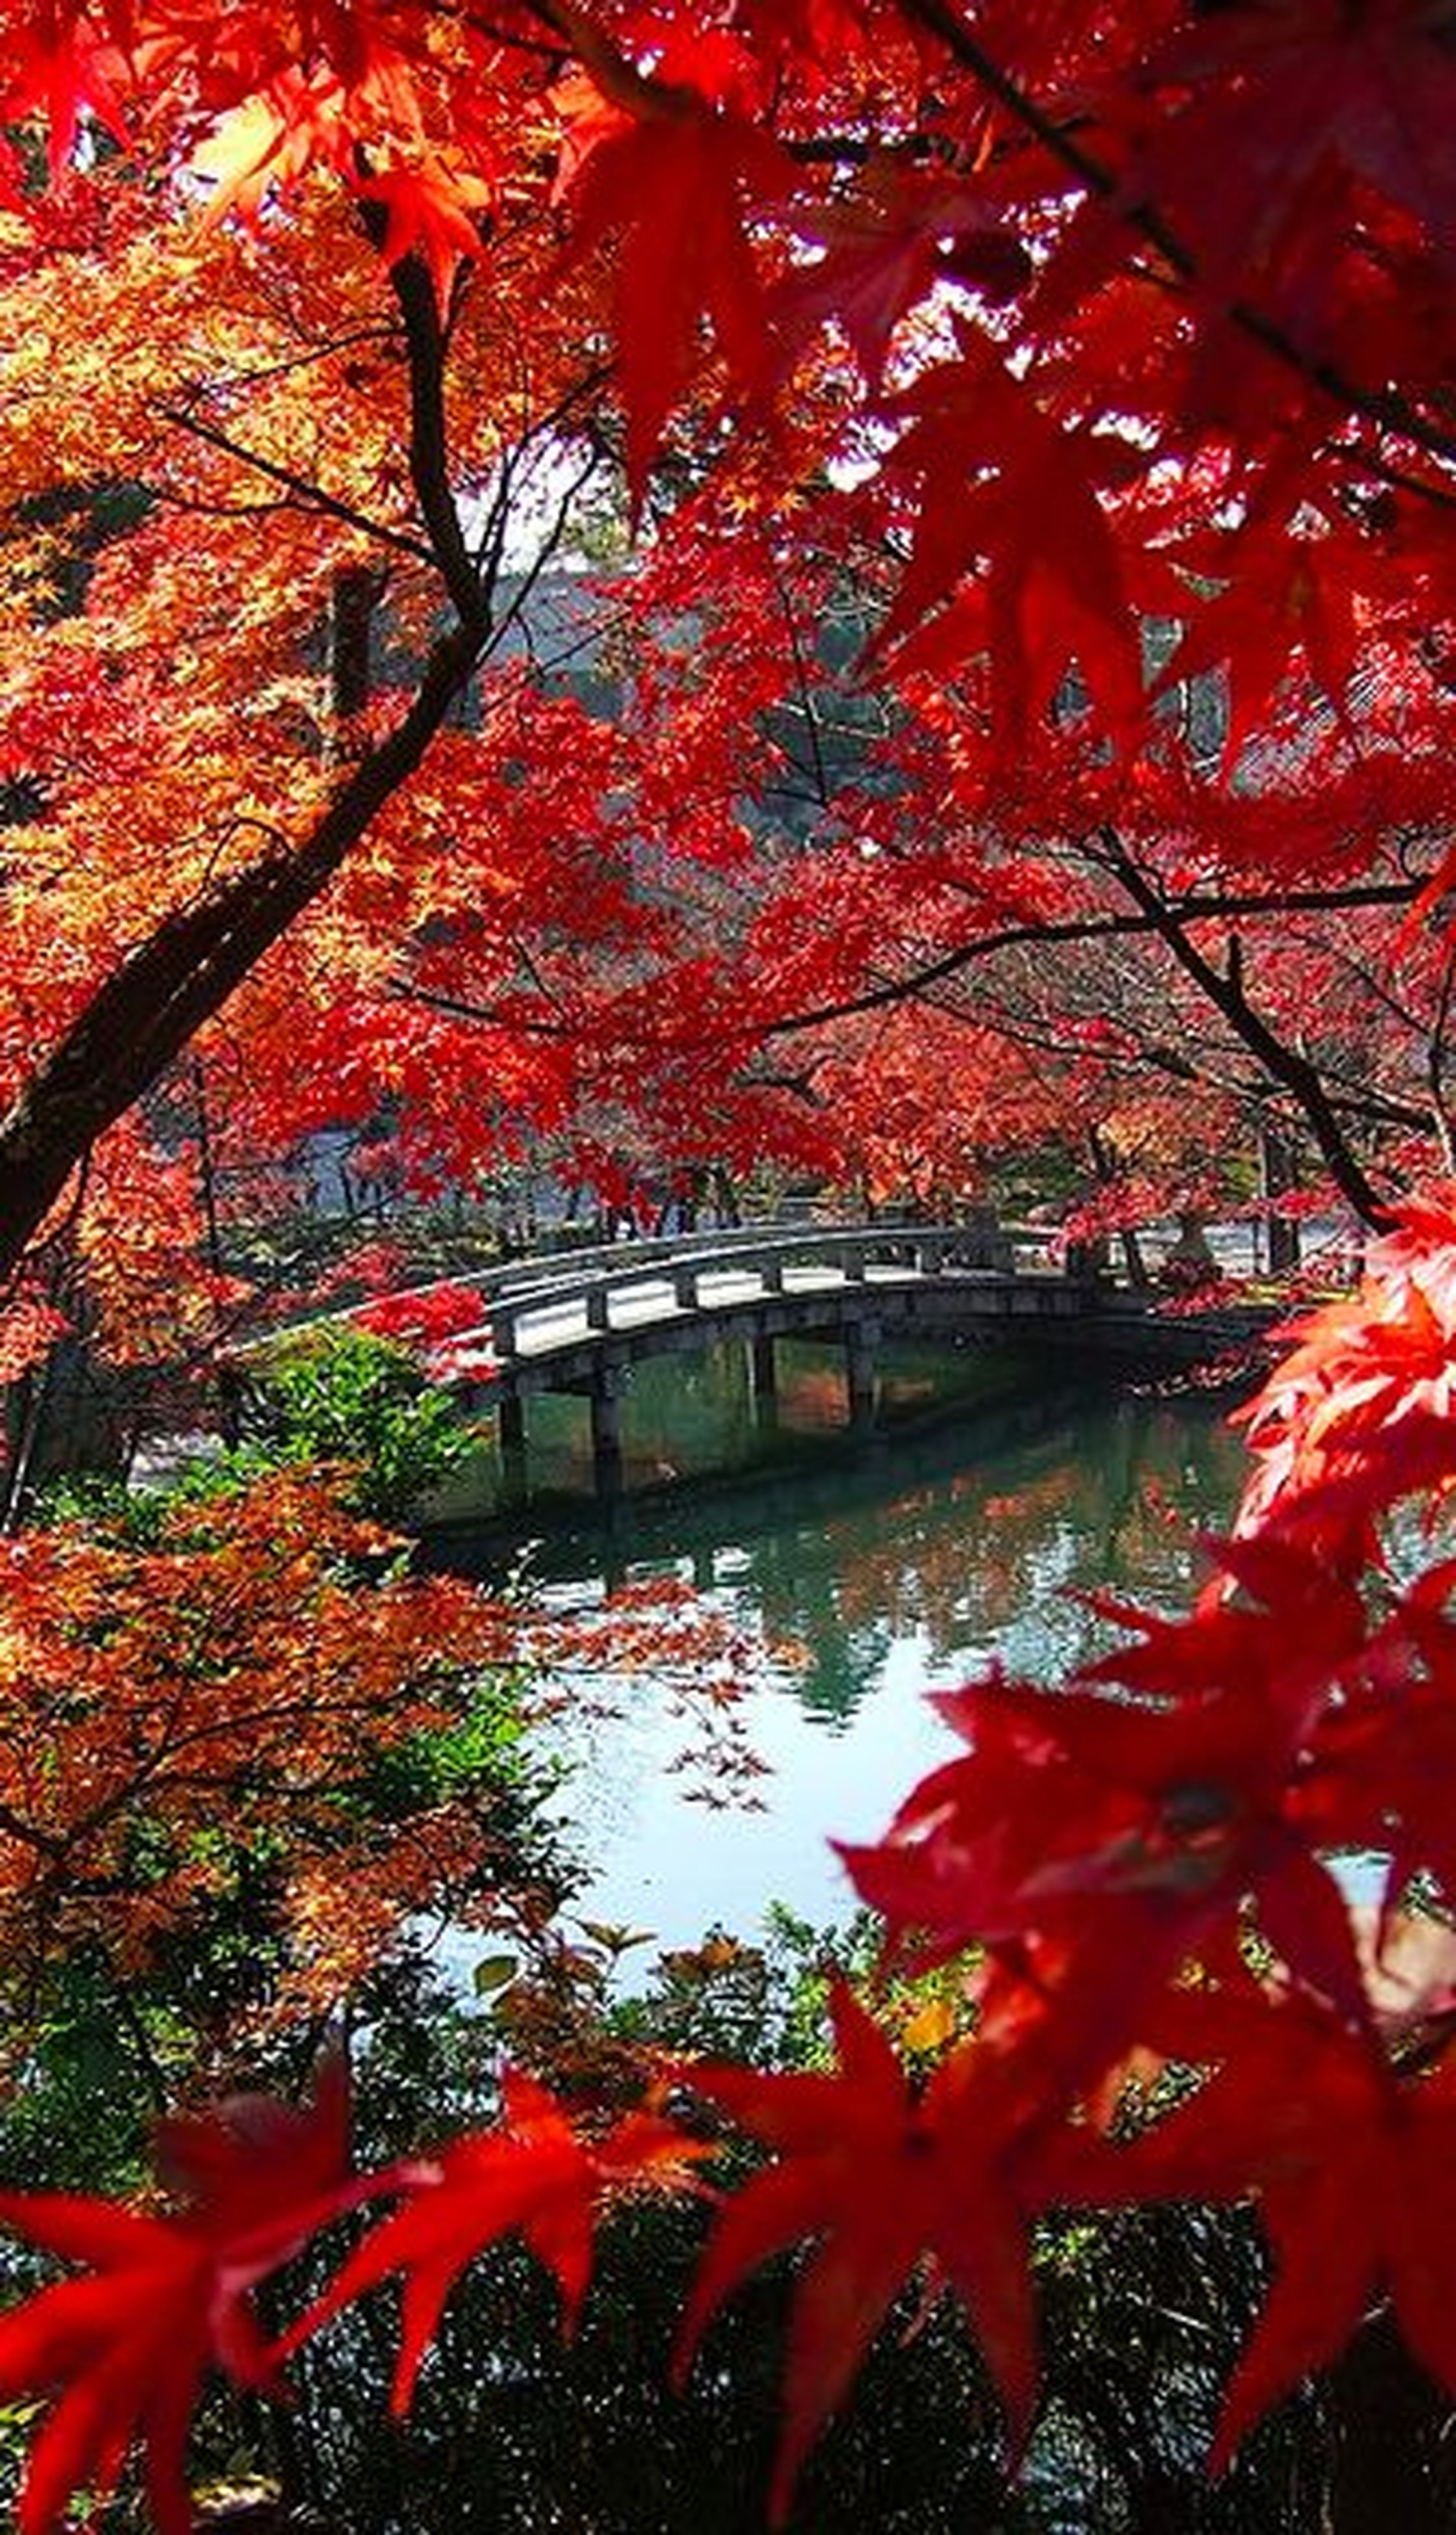 autumn, tree, change, red, season, branch, beauty in nature, water, nature, growth, leaf, tranquility, orange color, tranquil scene, scenics, day, reflection, maple tree, outdoors, no people